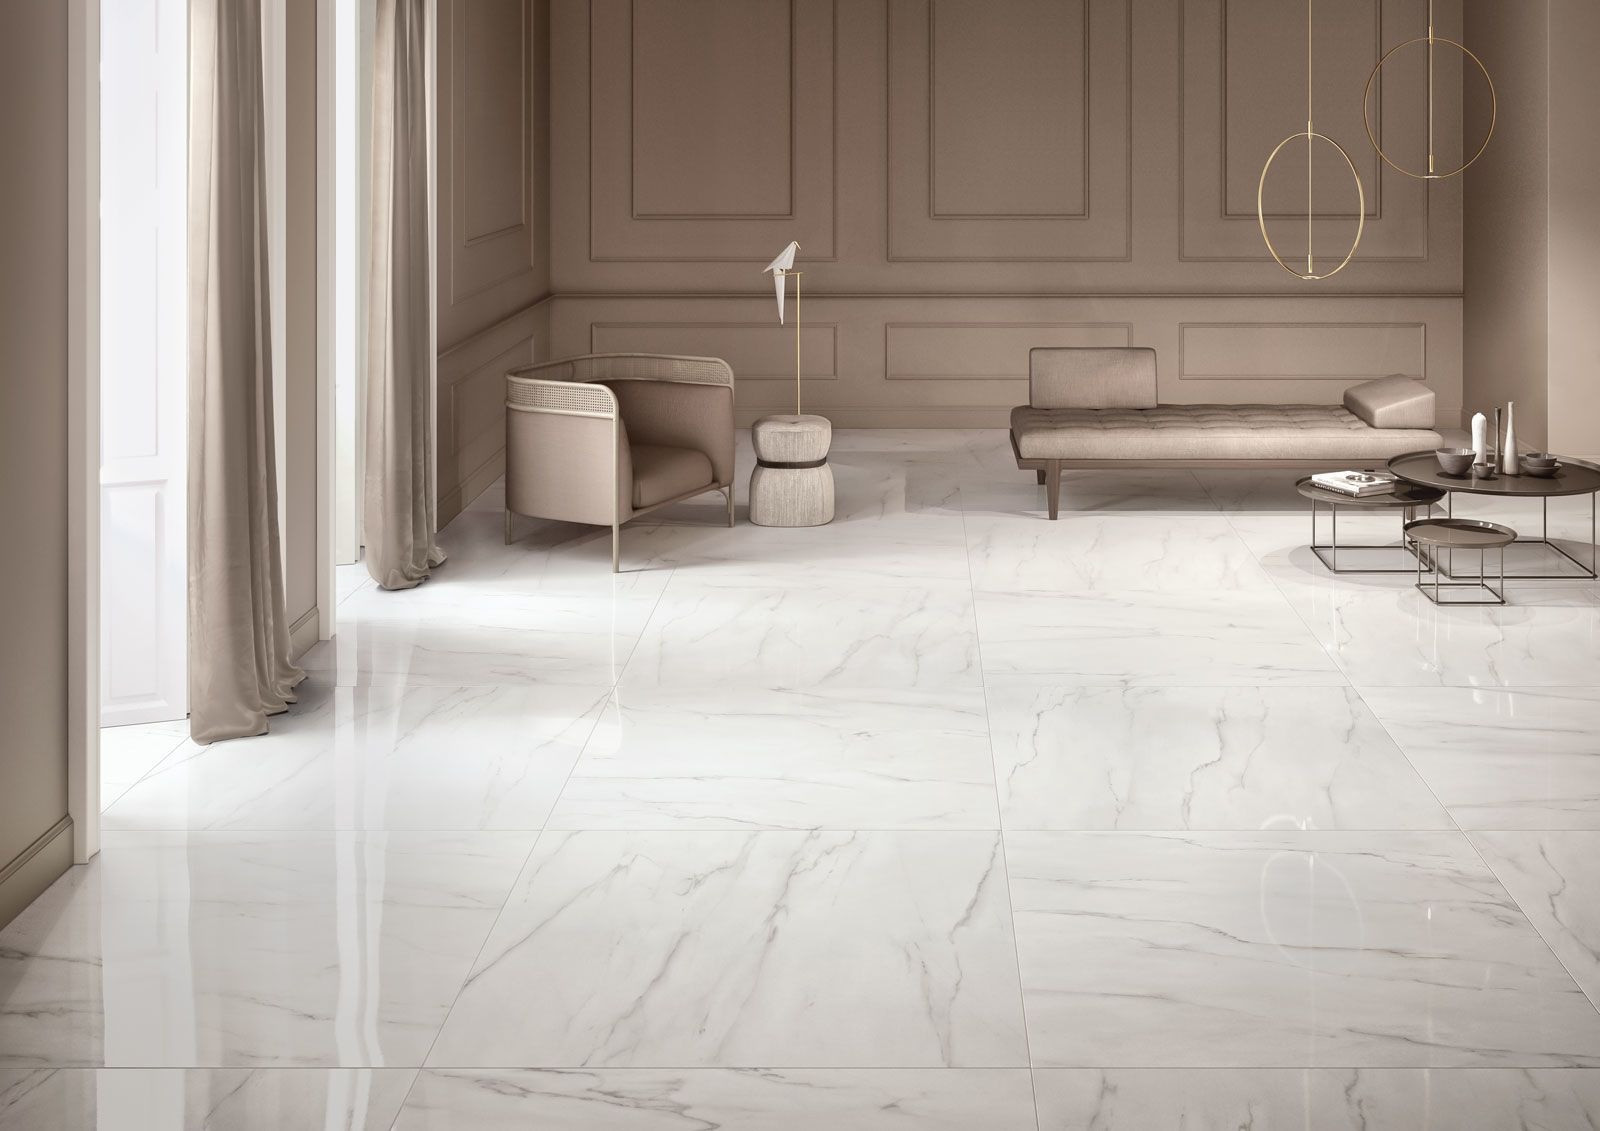 Hardwood Flooring Distributors Of 35 New Porcelain Tile Look Like Marble Pics Flooring Design Ideas Inside Porcelain Tile Look Like Marble Inspirational Elements Lux Ceramiche Keope Stock Of 35 New Porcelain Tile